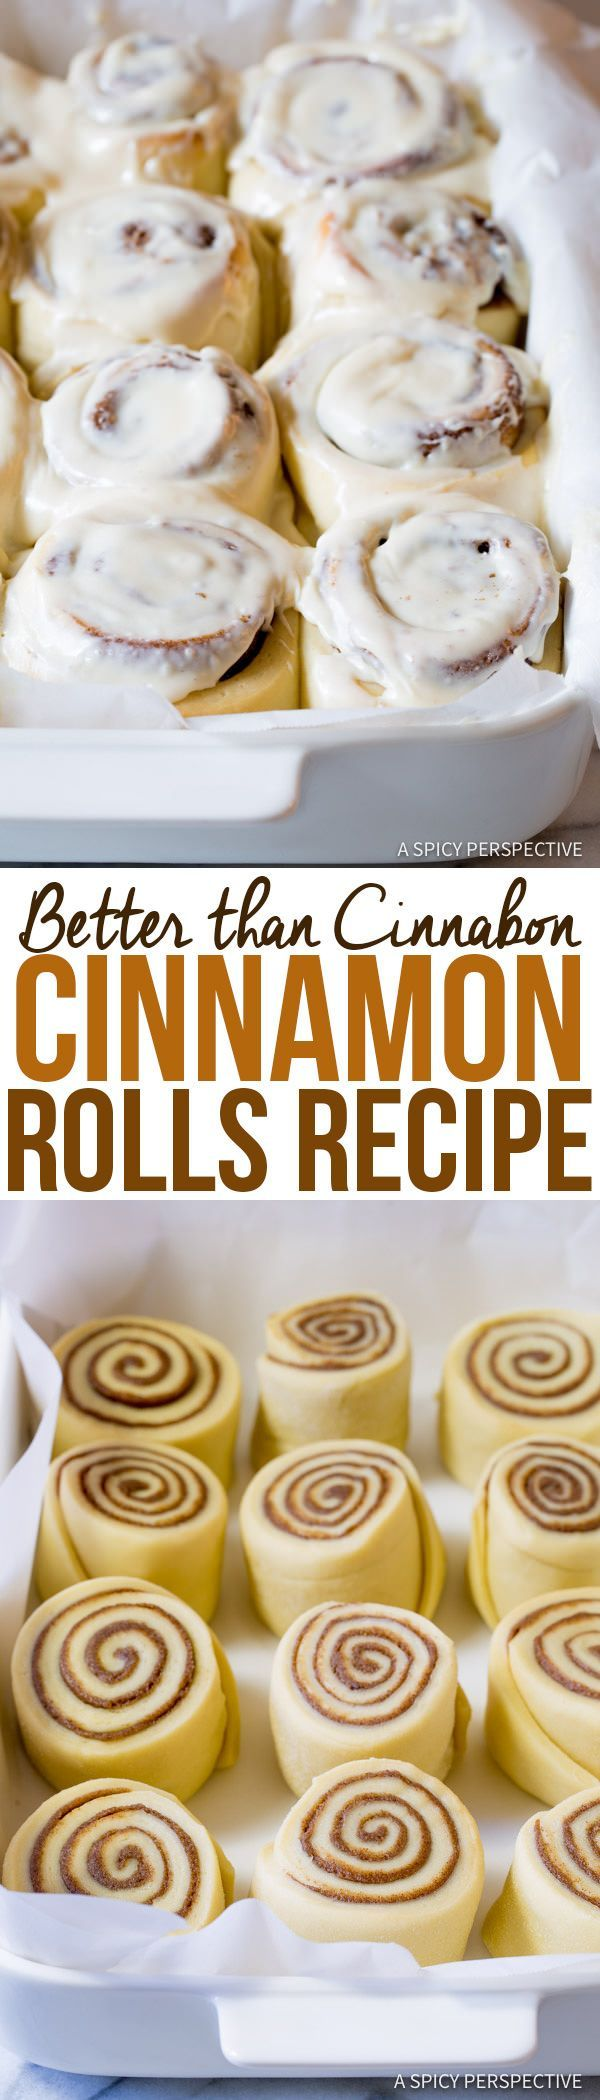 "Decadent ""Better than Cinnabon"" Cinnamon Rolls Recipe 